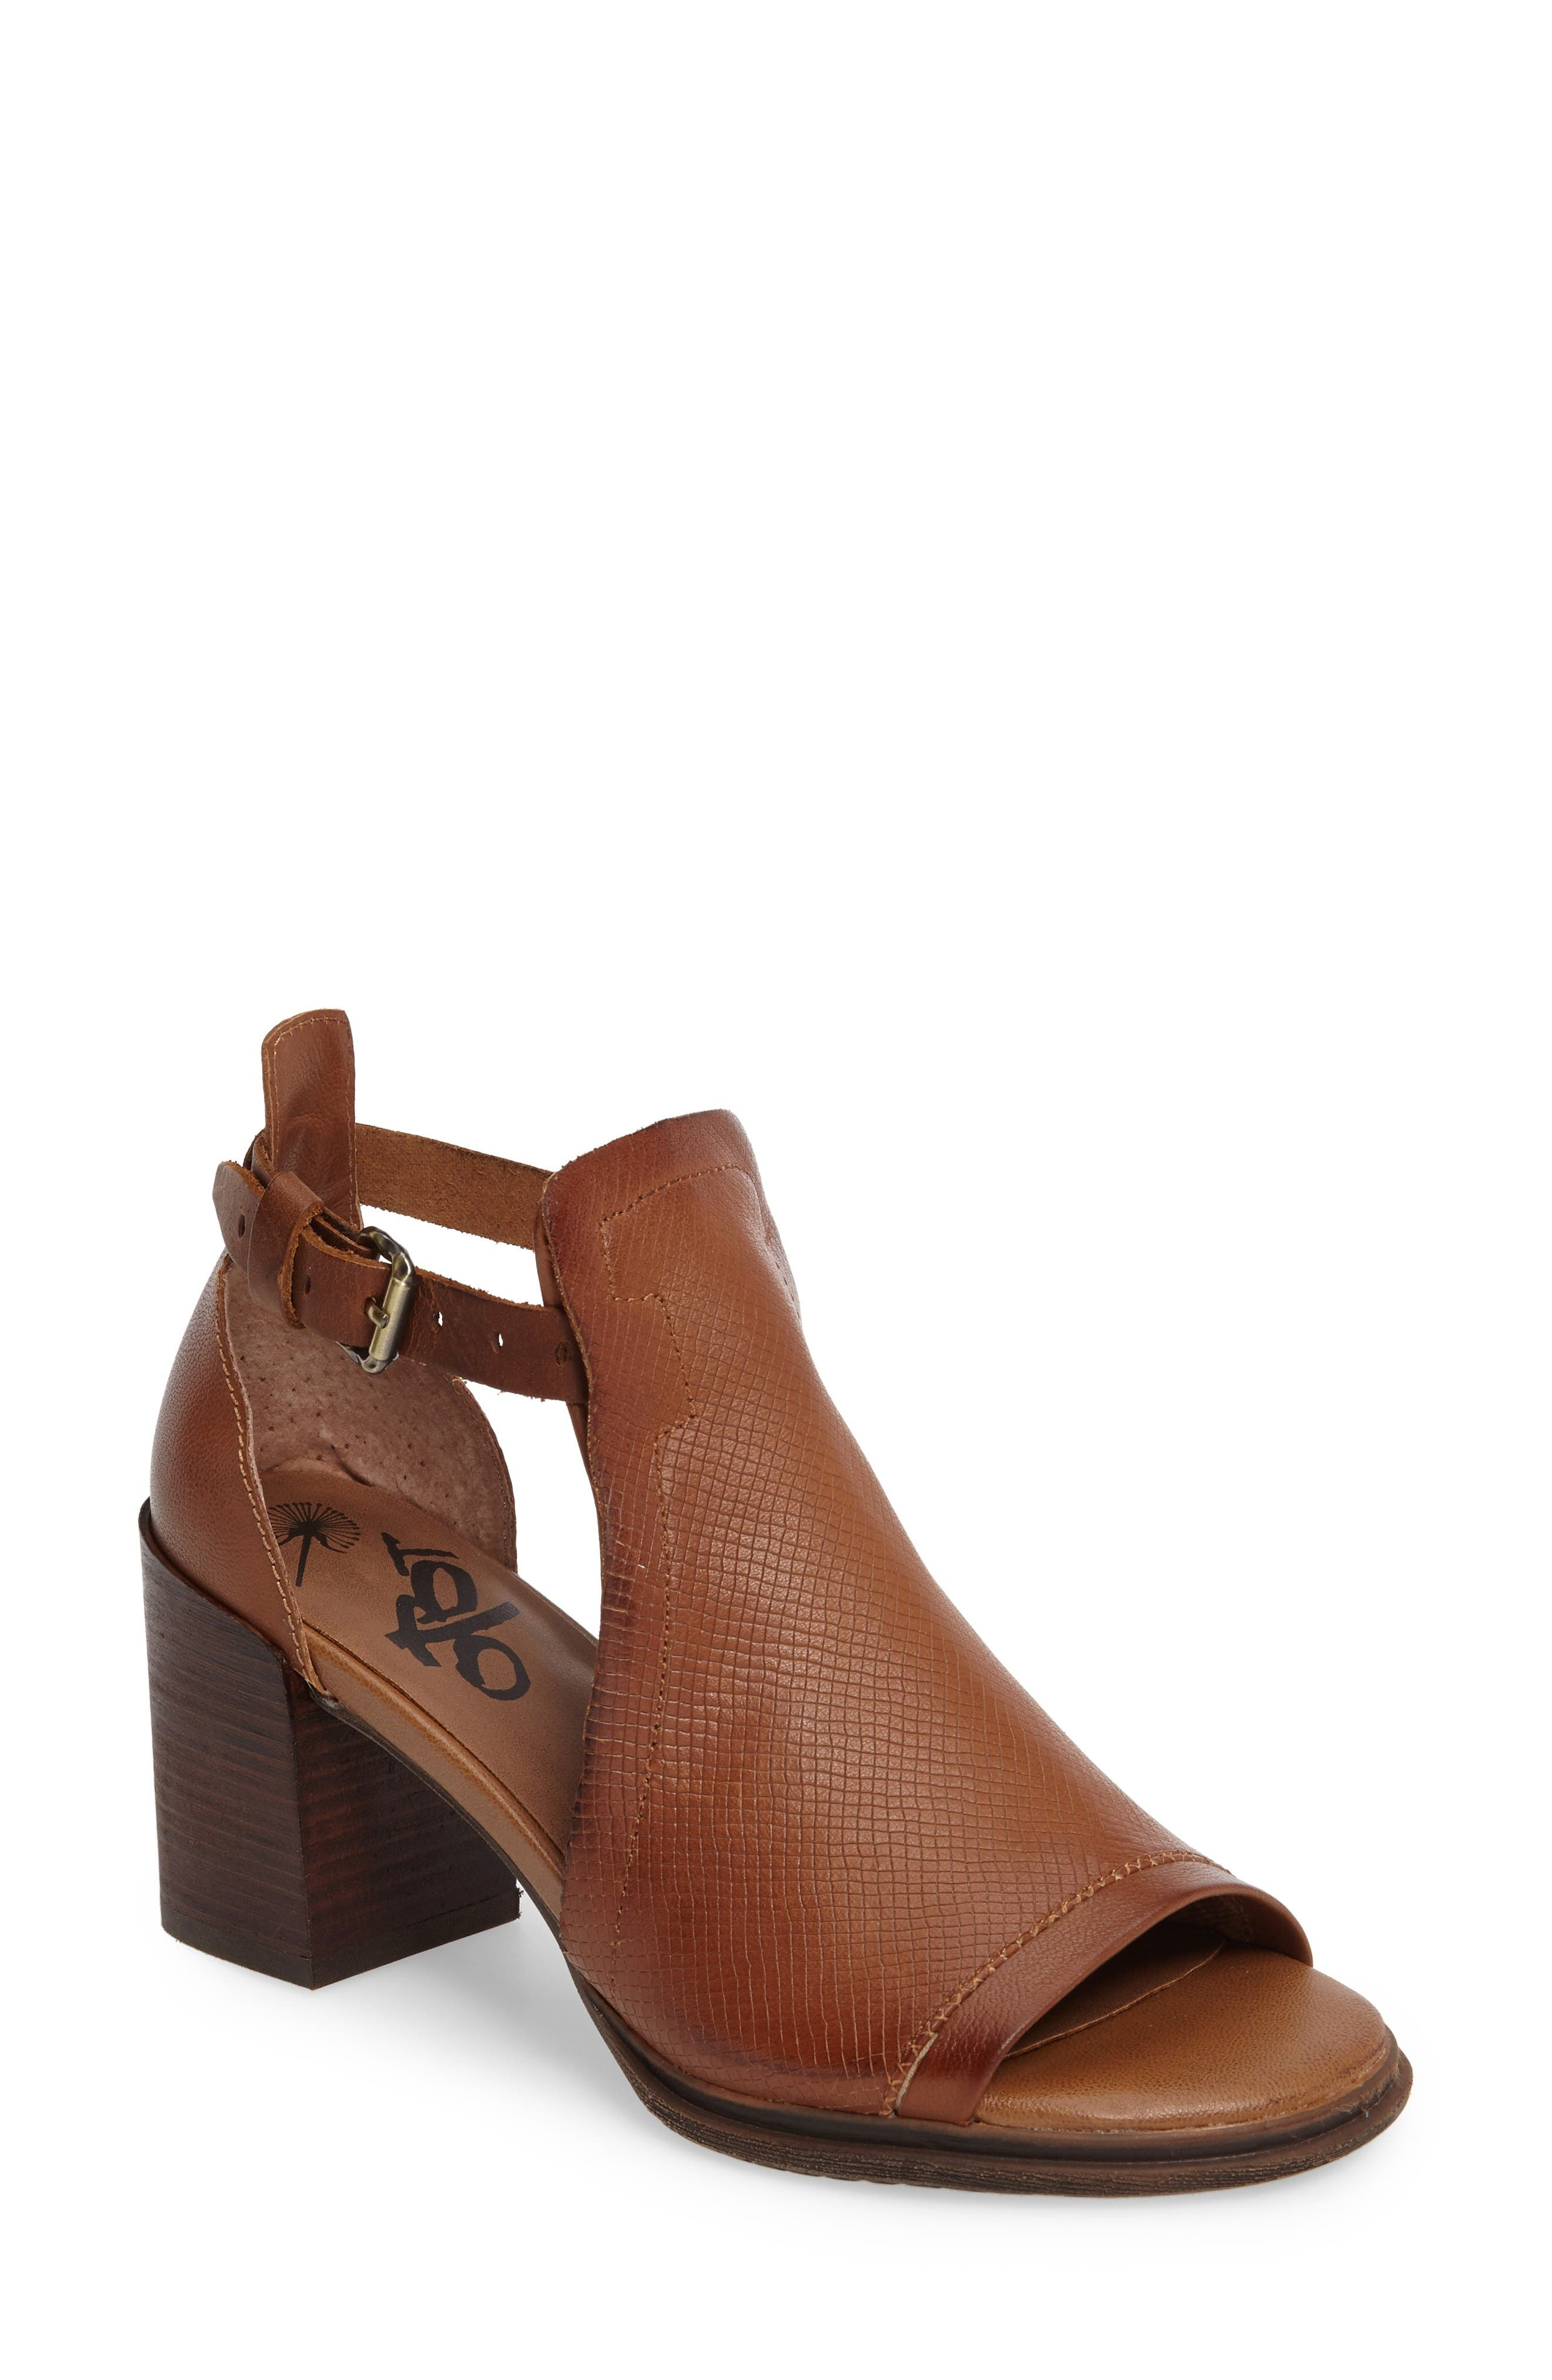 Metaphor Open Side Bootie,                         Main,                         color, Medium Brown Leather